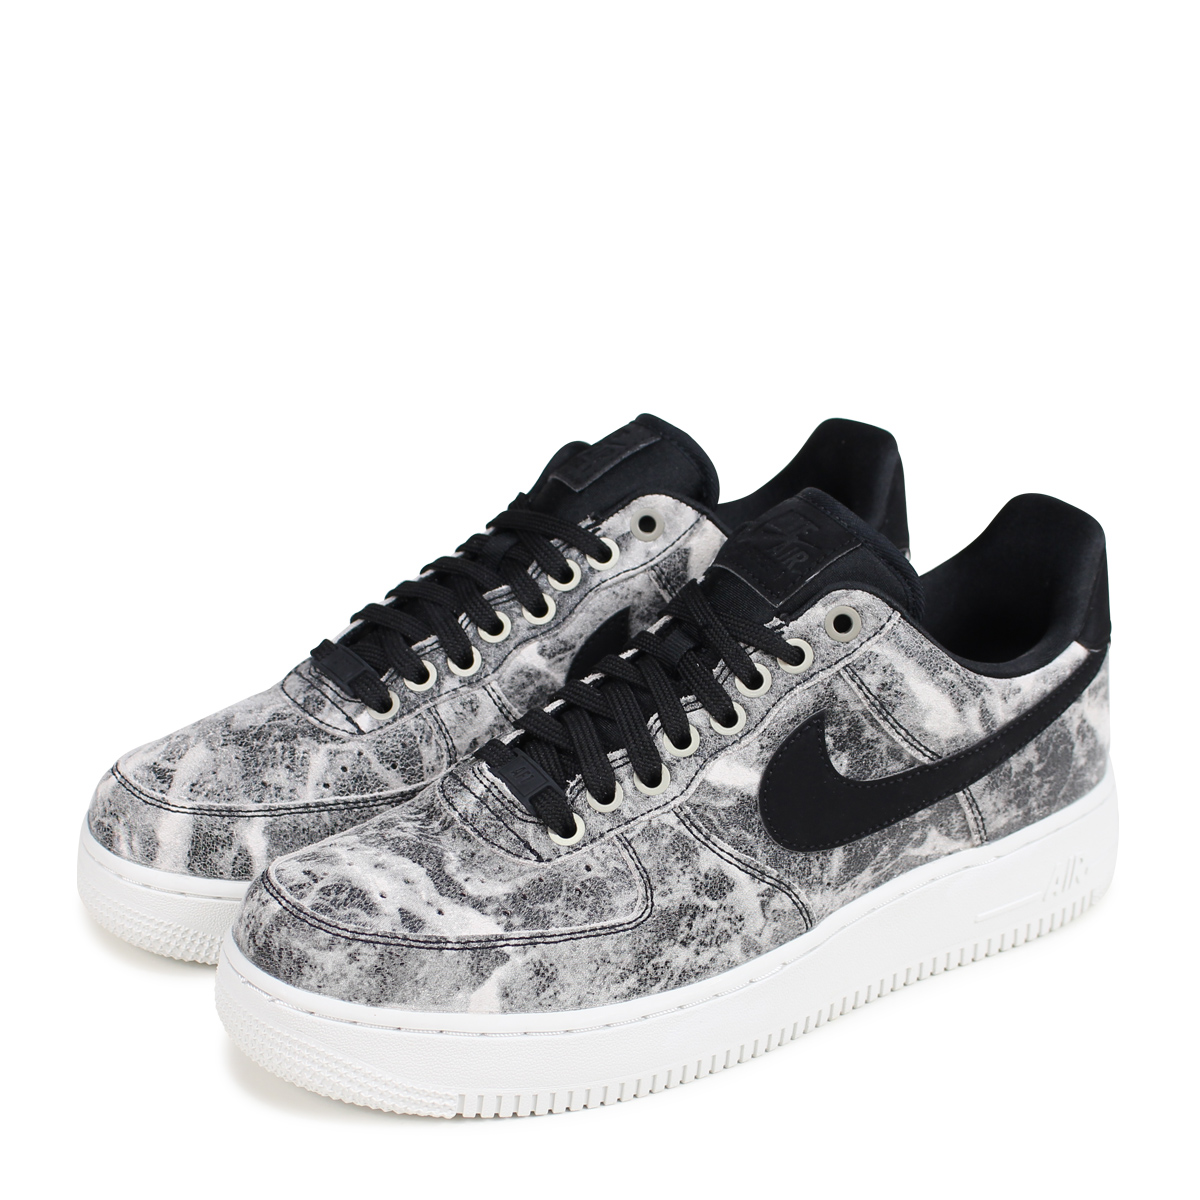 best authentic a8e47 c2245 NIKE WMNS AIR FORCE 1 07 LXX Nike air force 1 lady s men s sneakers AO1017-  ...